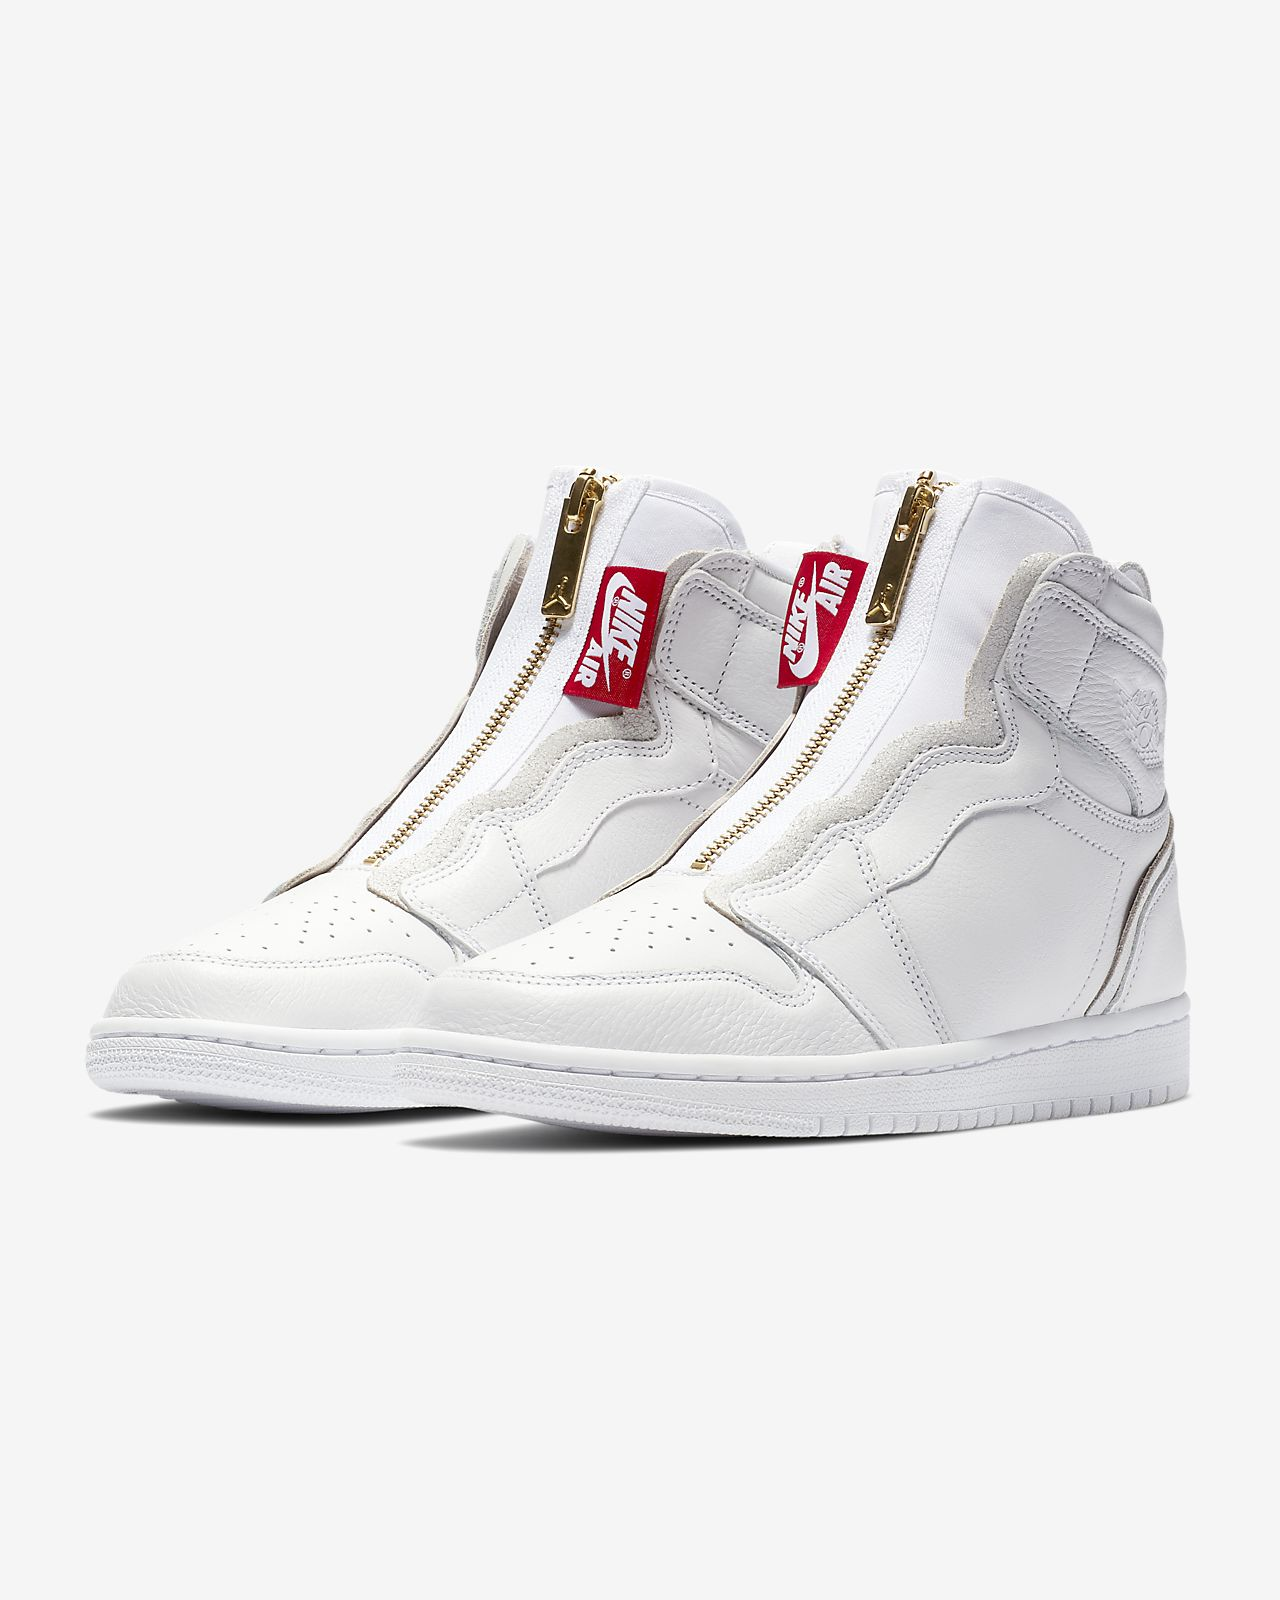 innovative design 59da0 9c9bd ... Air Jordan 1 High Zip Women s Shoe